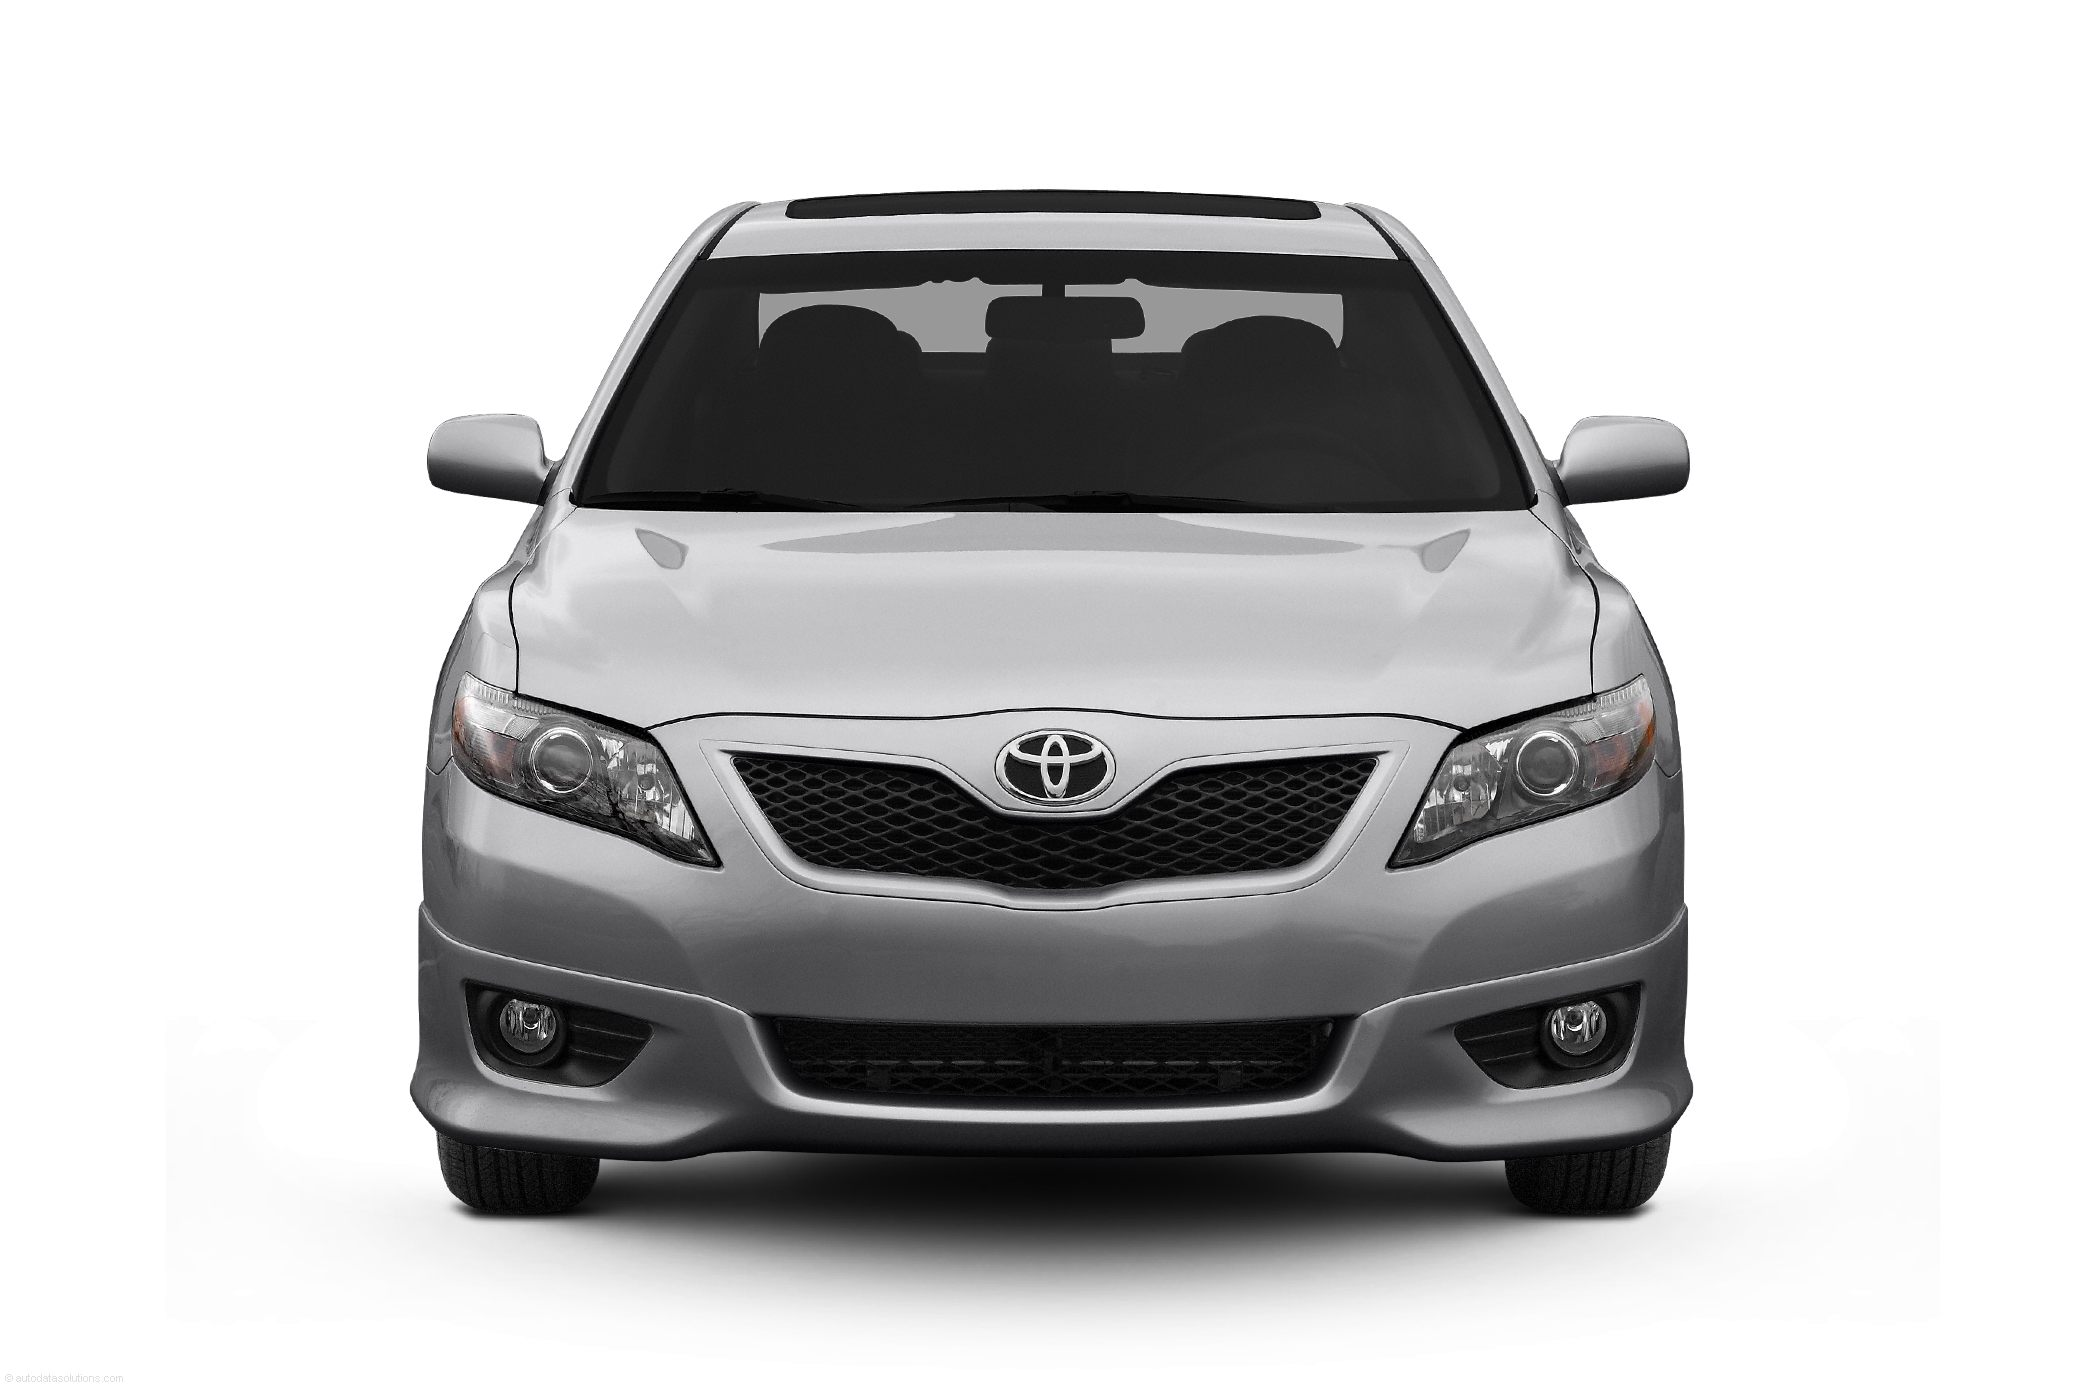 Toyota car front png #32722.